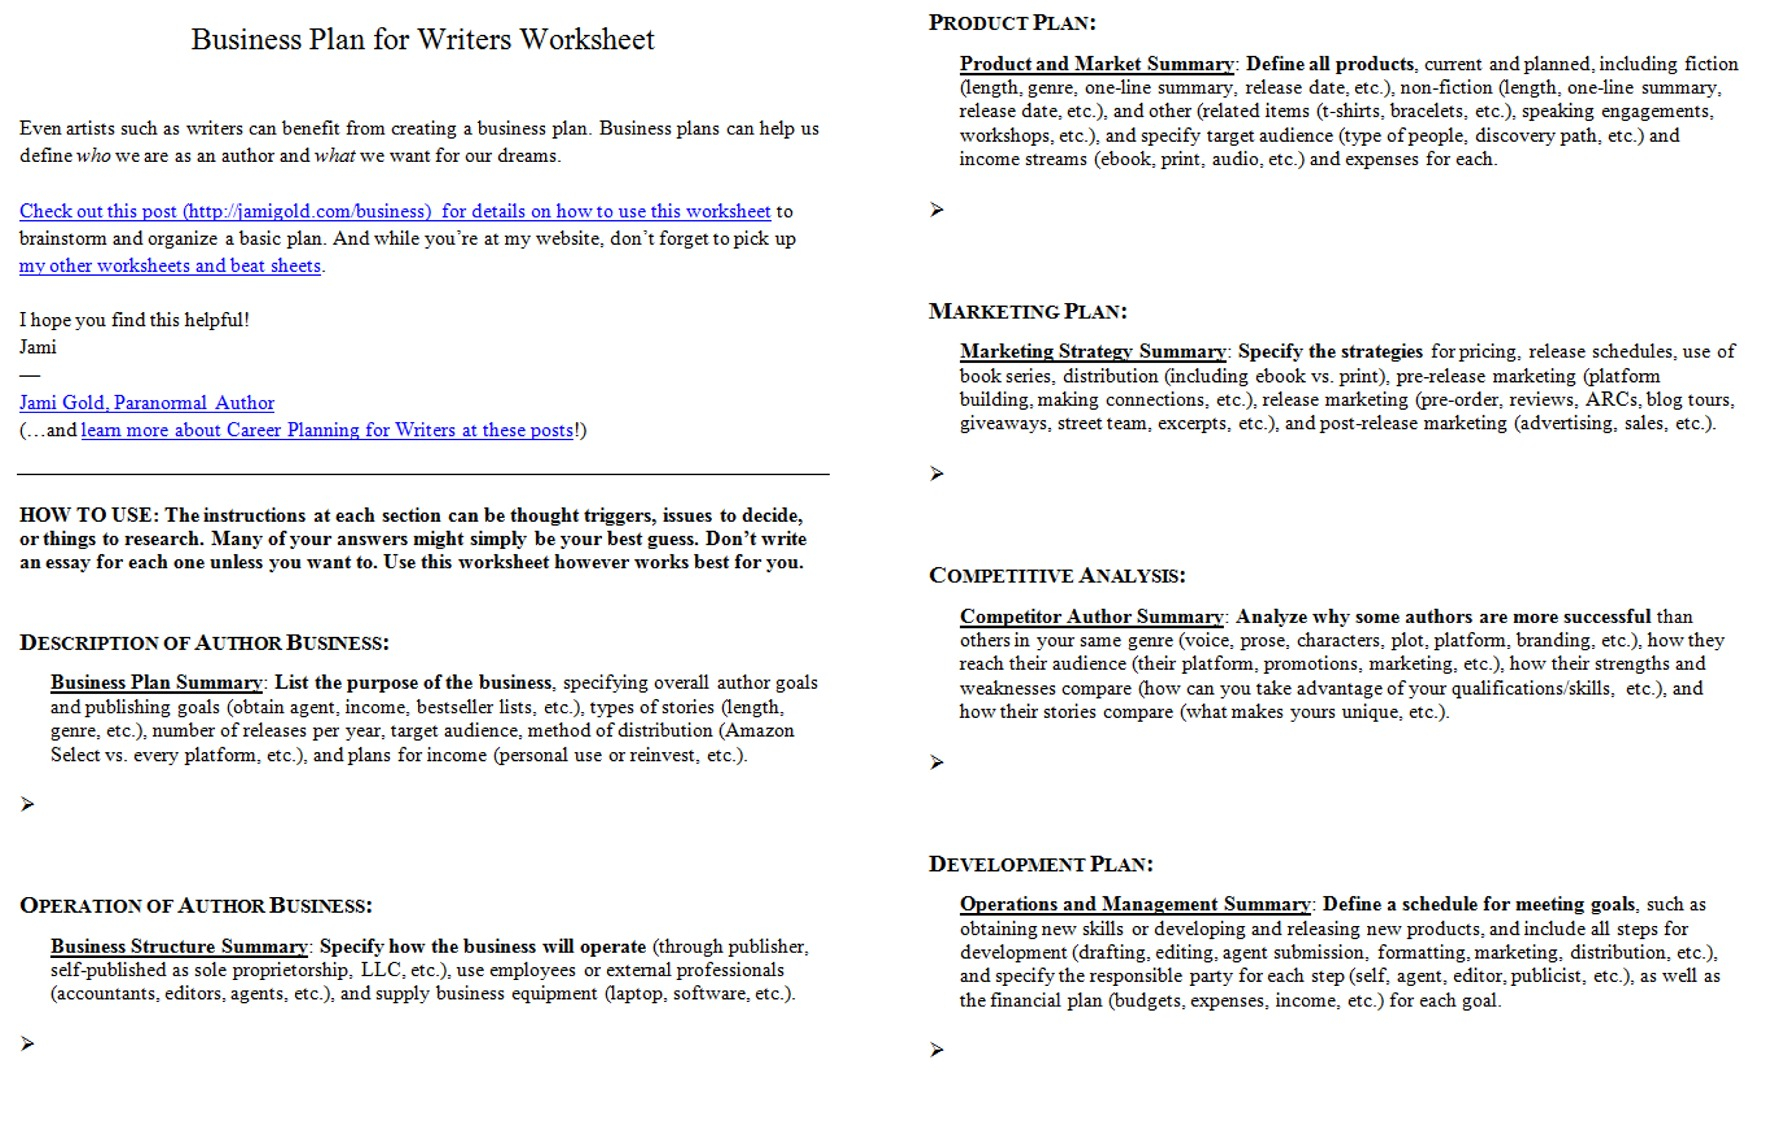 Aldiablosus  Splendid Worksheets For Writers  Jami Gold Paranormal Author With Inspiring Screen Shot Of Both Pages Of The Business Plan For Writers Worksheet With Easy On The Eye Free Worksheets Printable Also Answer Key To Science Worksheets In Addition Worksheets On Money And Odd And Even Numbers Worksheet As Well As Seasons Worksheets Middle School Additionally Dividing Polynomials Worksheets From Jamigoldcom With Aldiablosus  Inspiring Worksheets For Writers  Jami Gold Paranormal Author With Easy On The Eye Screen Shot Of Both Pages Of The Business Plan For Writers Worksheet And Splendid Free Worksheets Printable Also Answer Key To Science Worksheets In Addition Worksheets On Money From Jamigoldcom